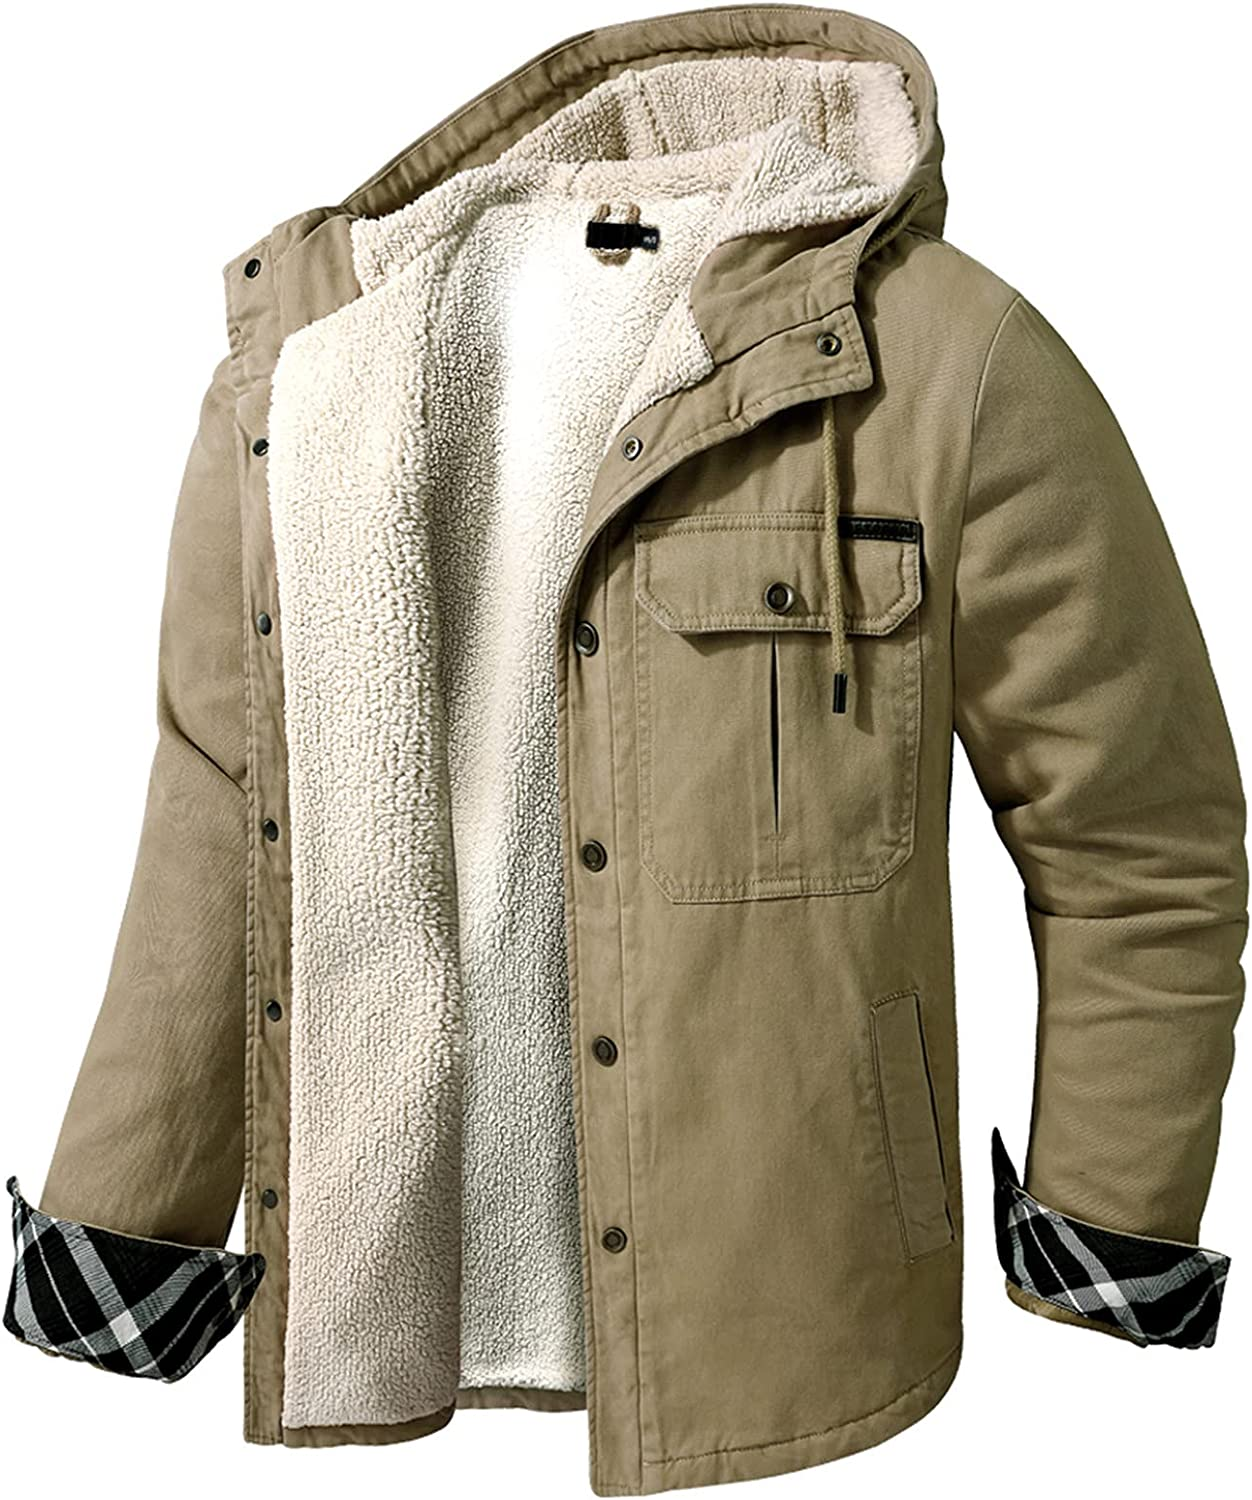 Men's Winter cheap Thick Jacket - Parka Max 49% OFF Hooded Lined Warm Wool